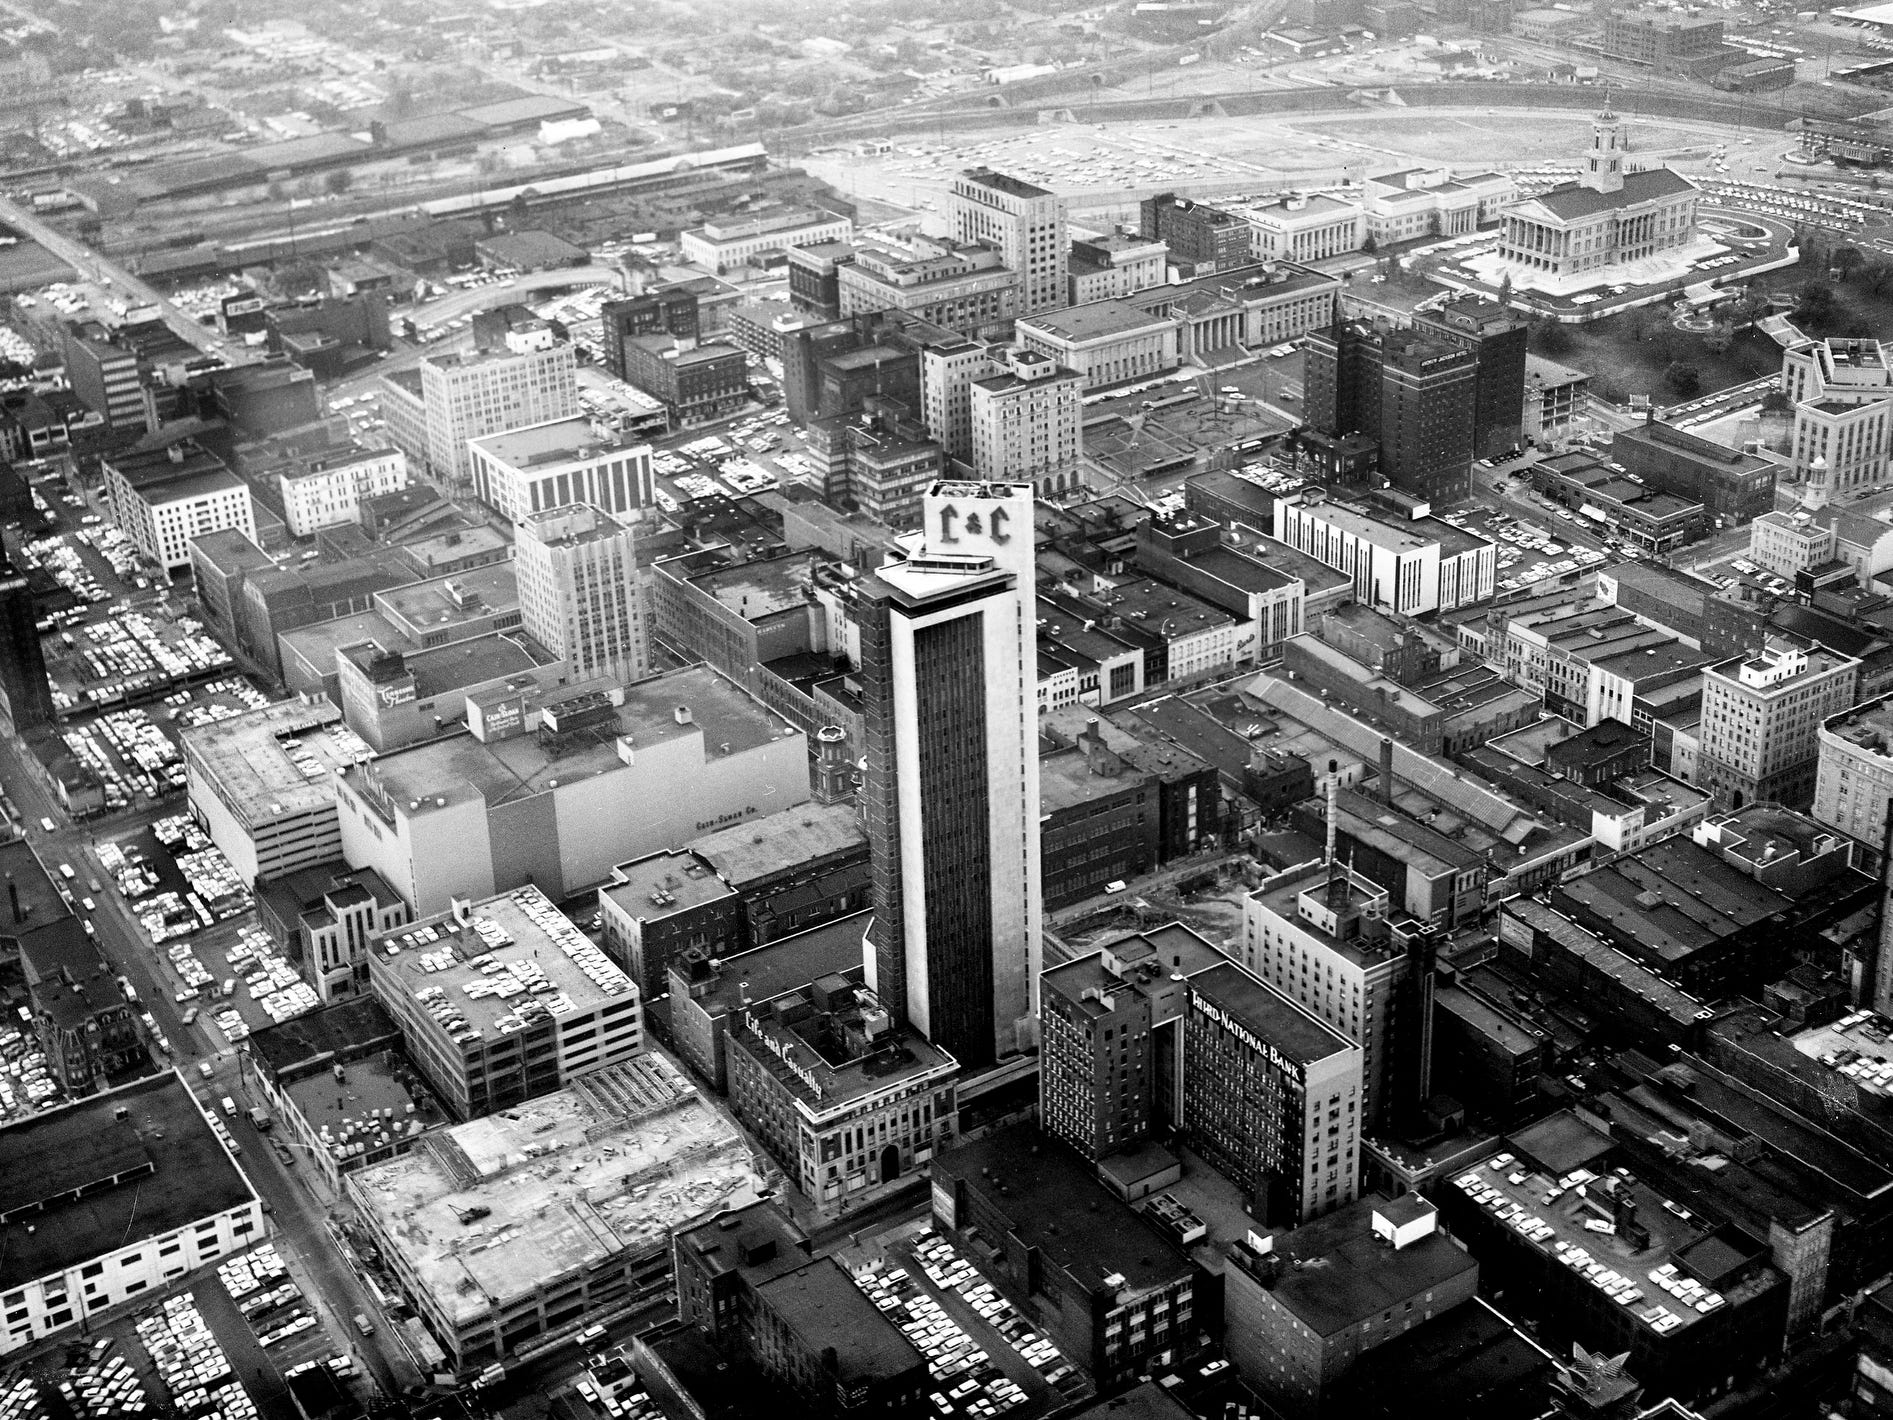 An aerial view of downtown Nashville on Nov. 2, 1962 shows the Life and Casualty Tower standing tall among all the other buildings.